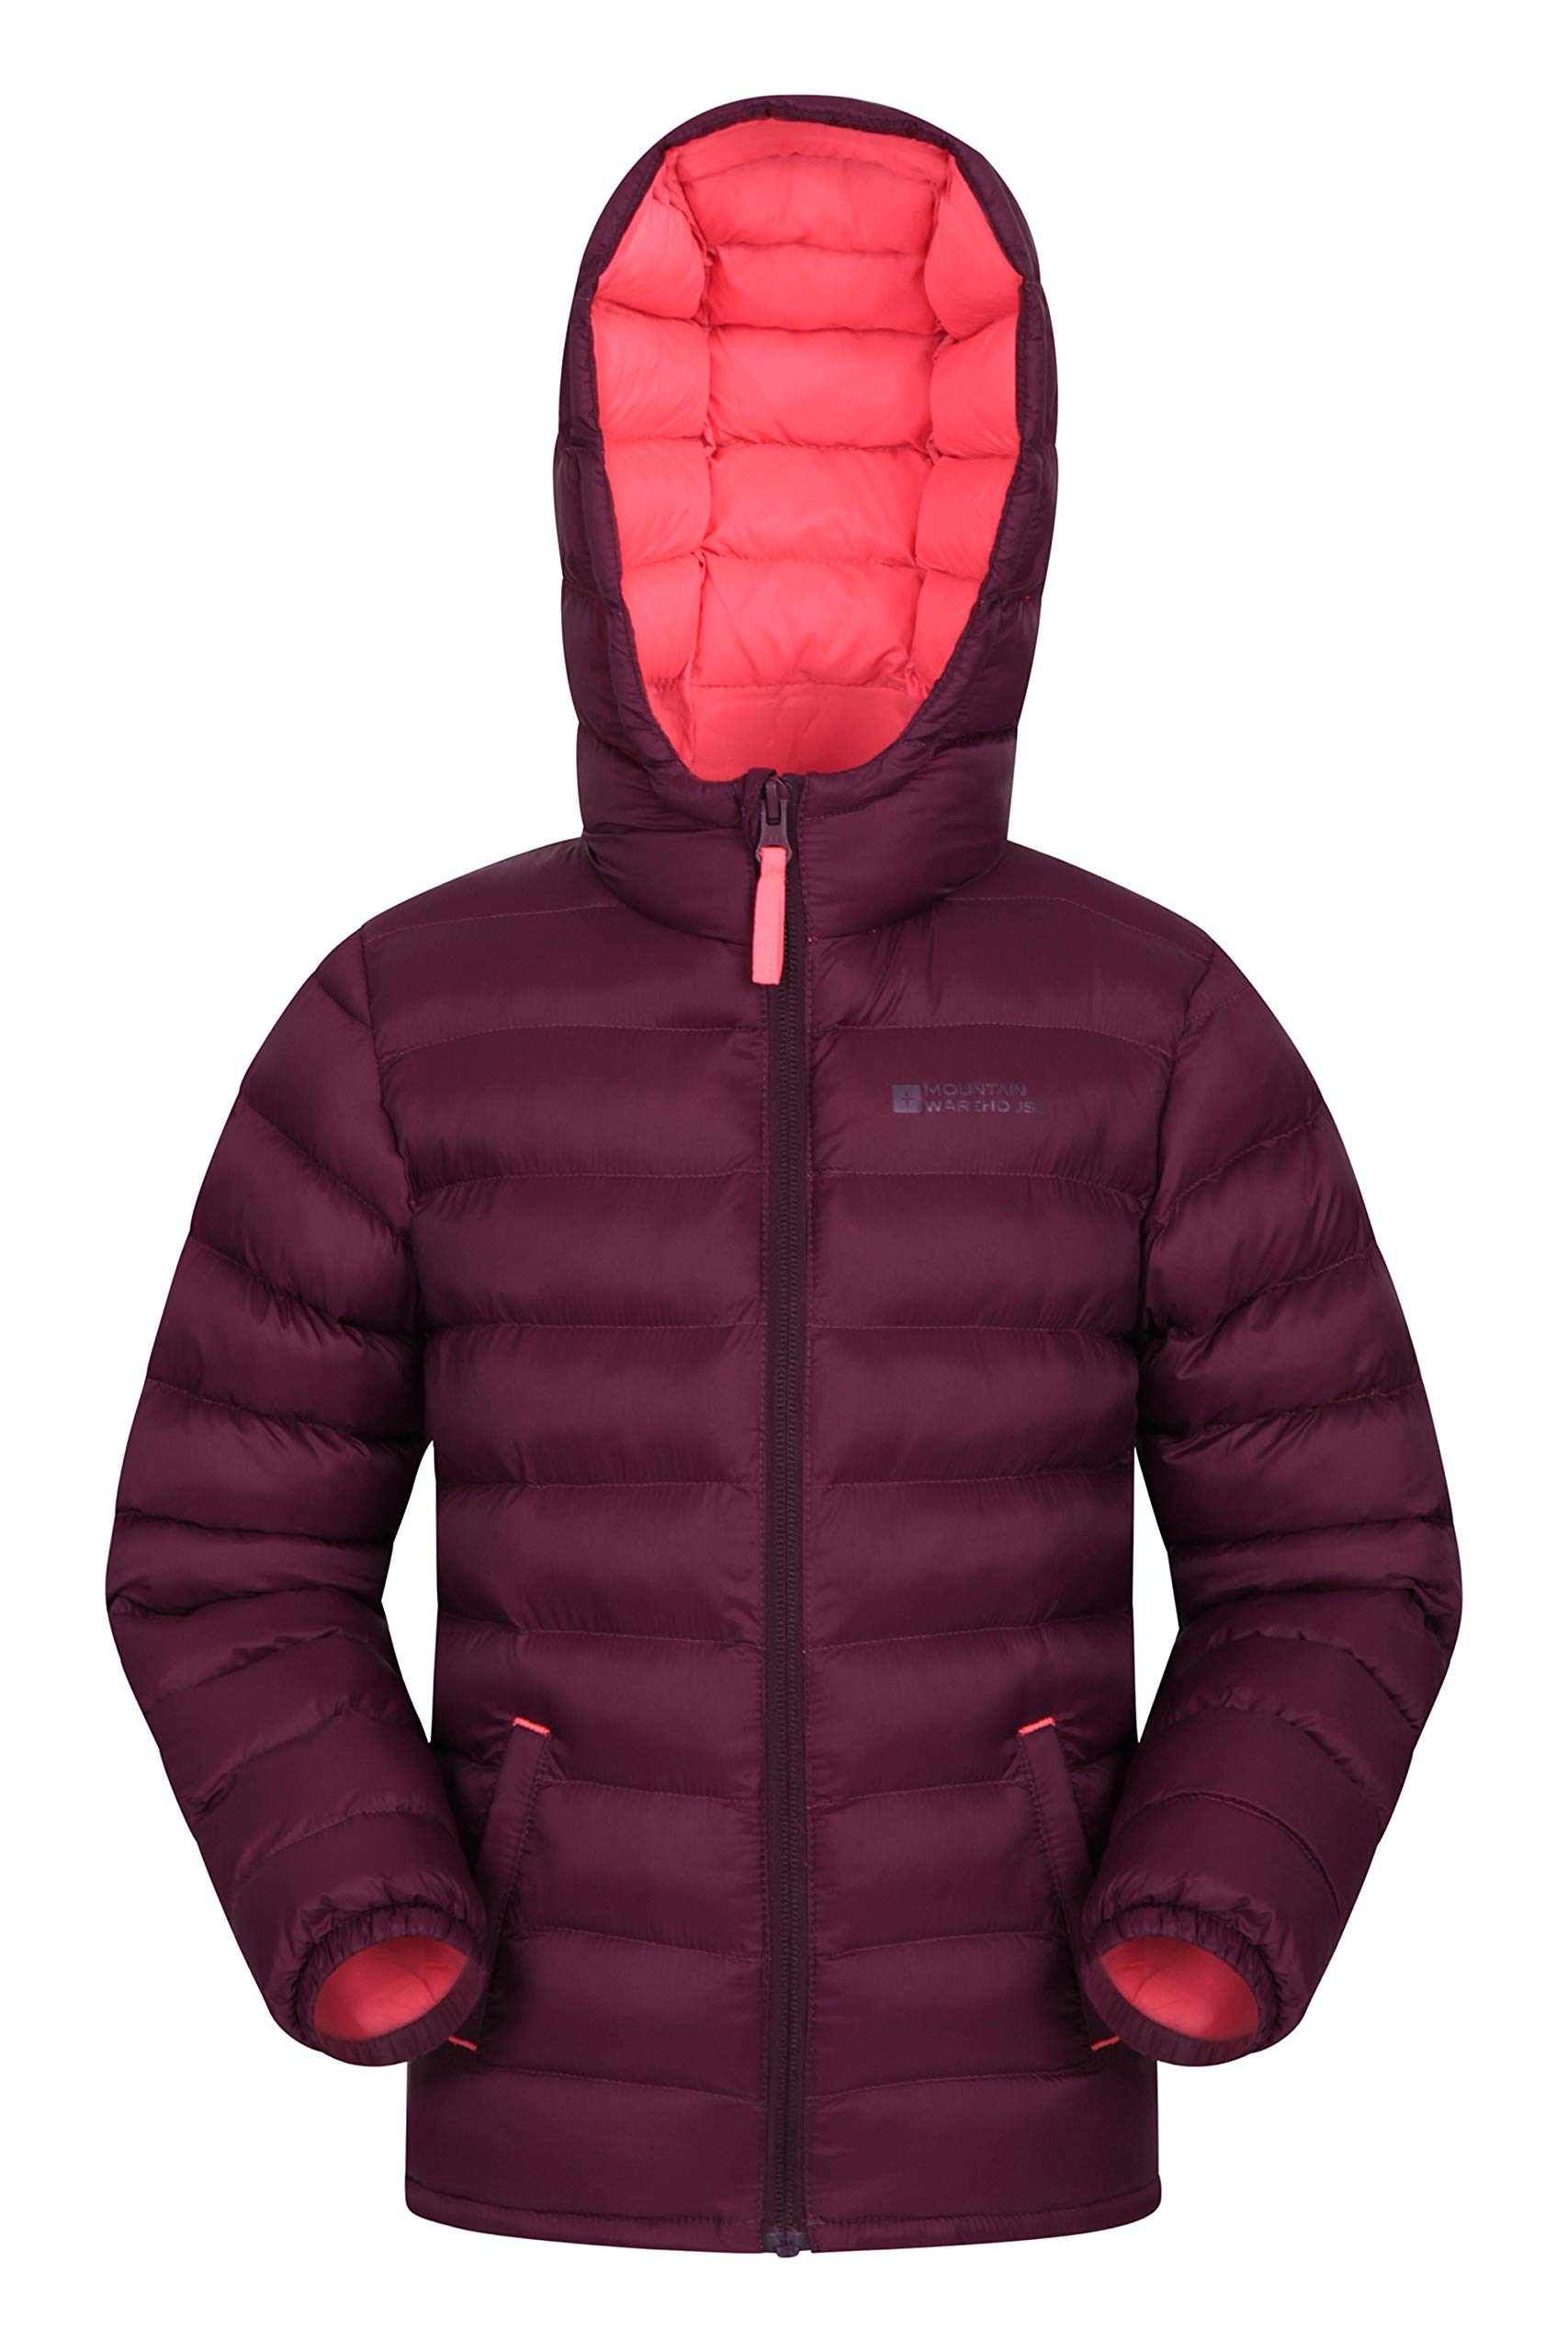 Mountain Warehouse Seasons Boys Jacket